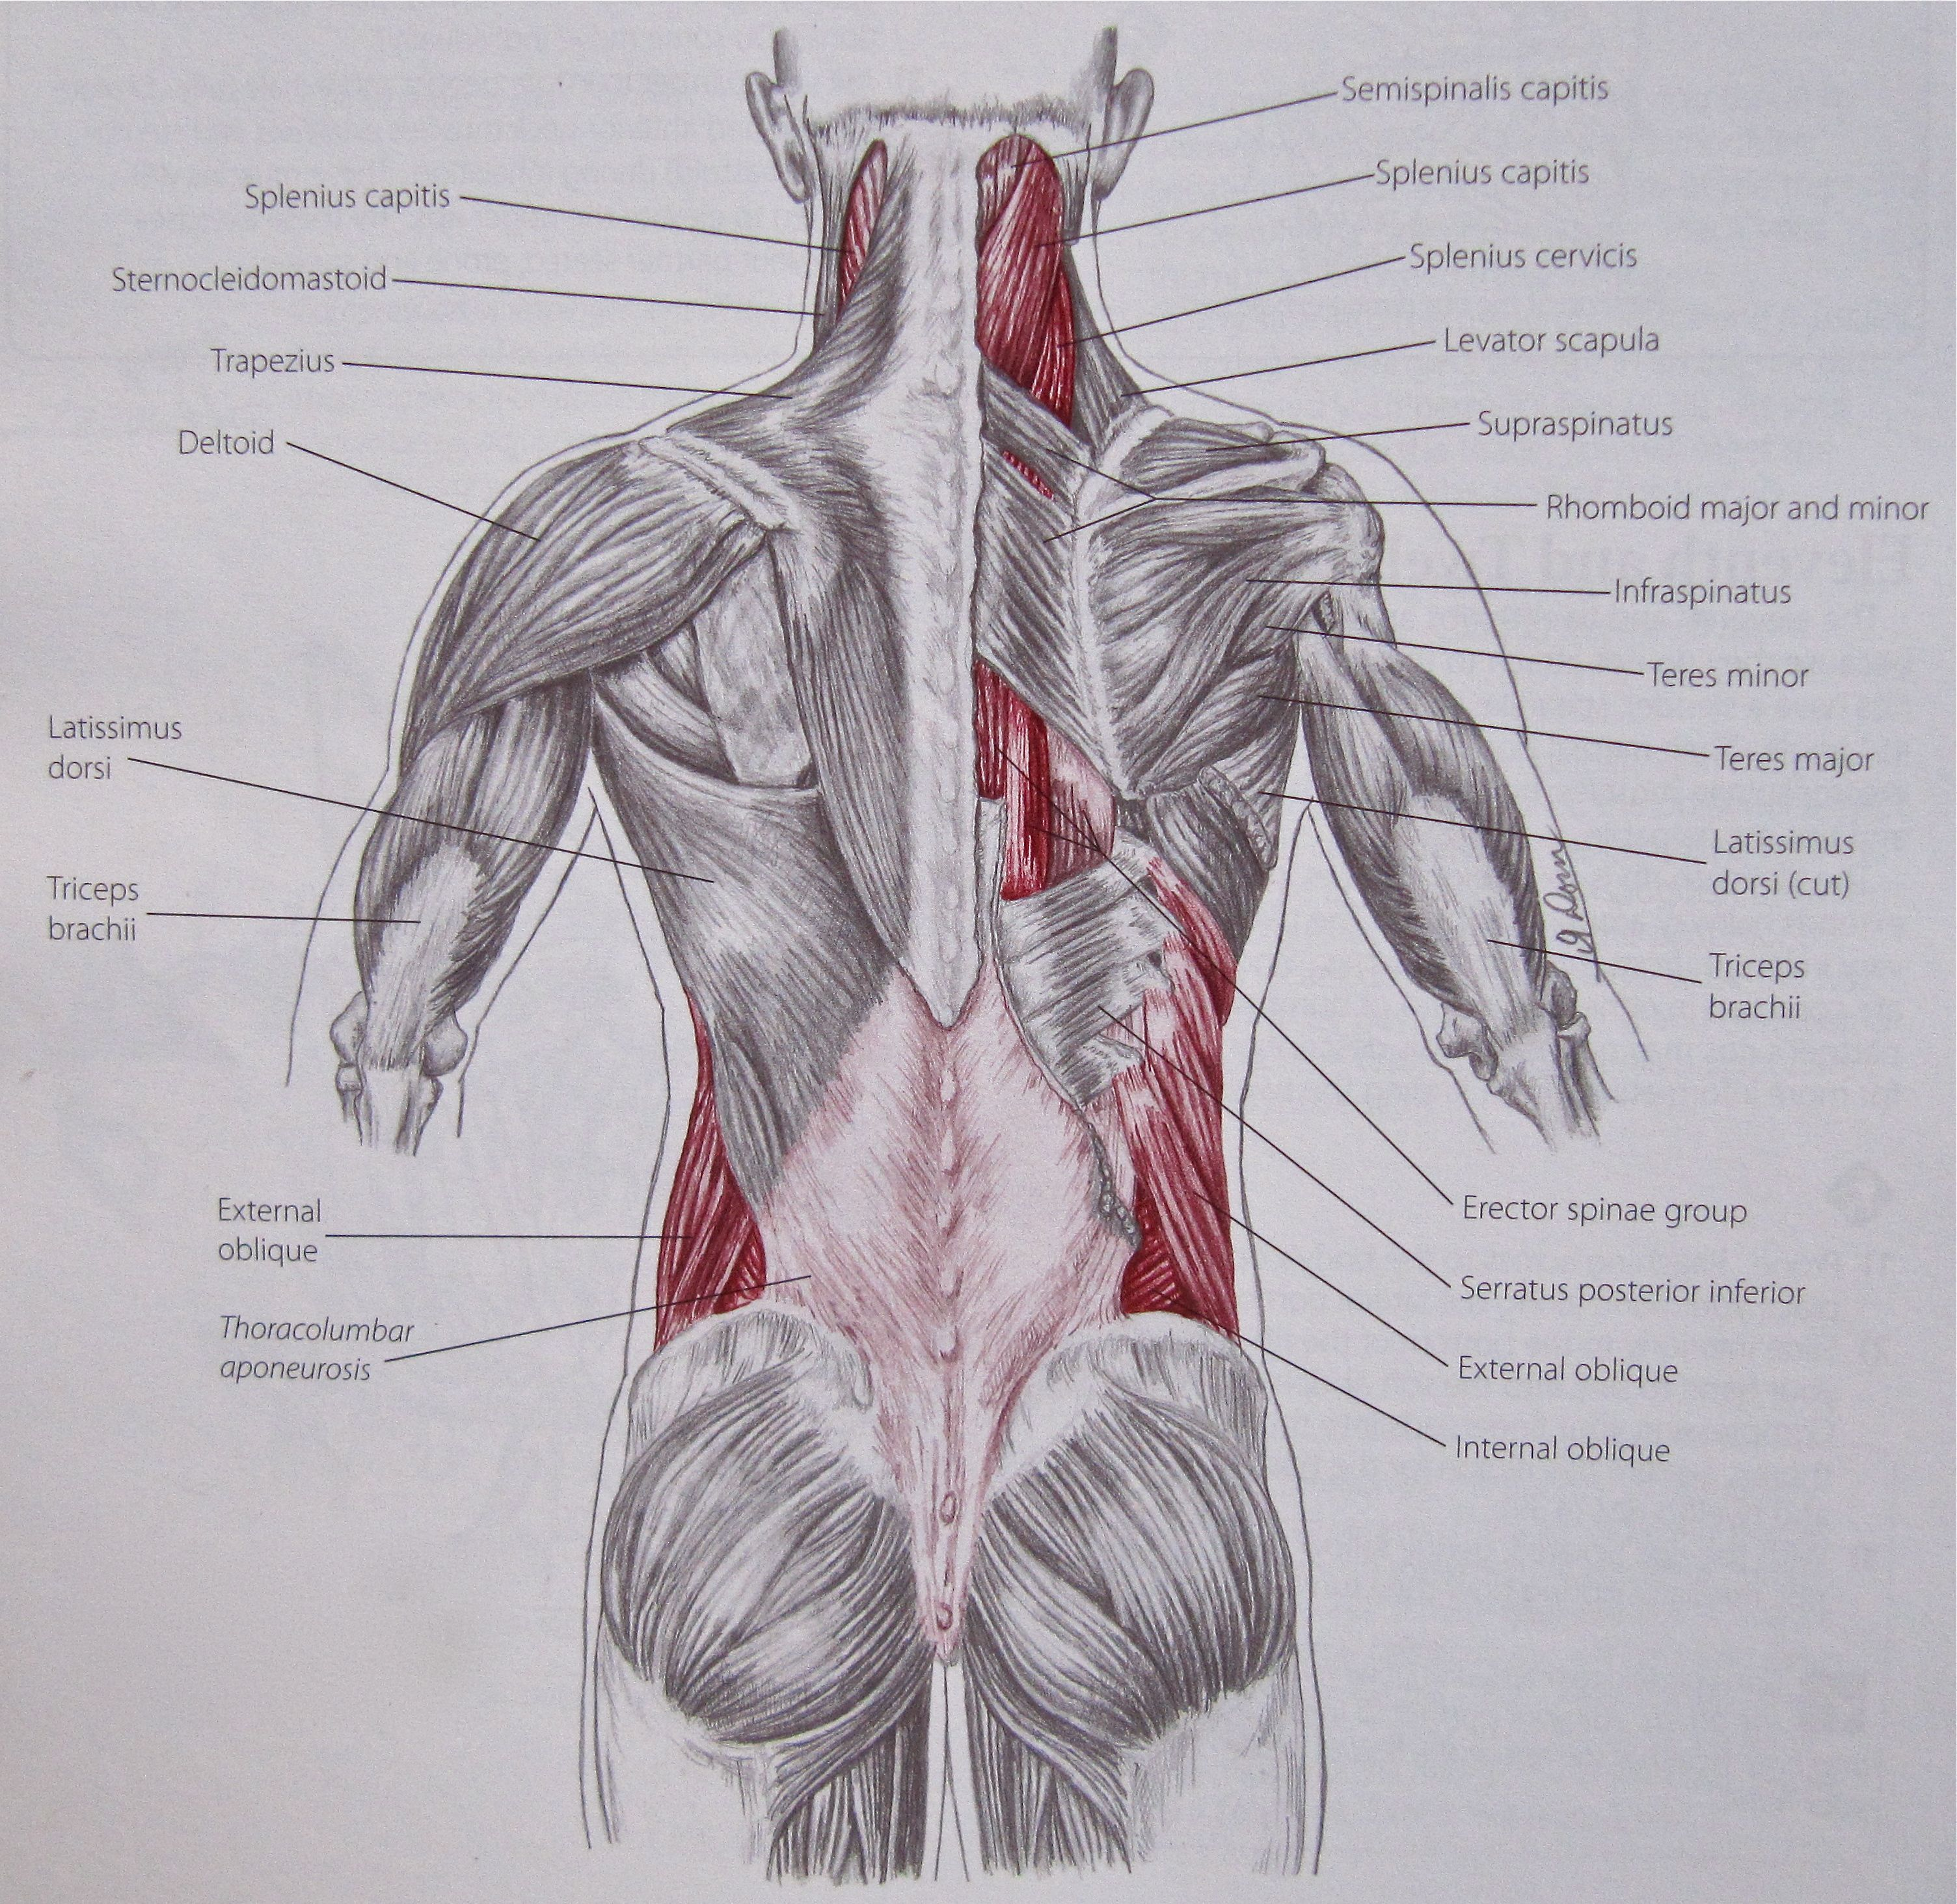 Notes On Anatomy And Physiology The Thoracolumbar Fascia Med Surg